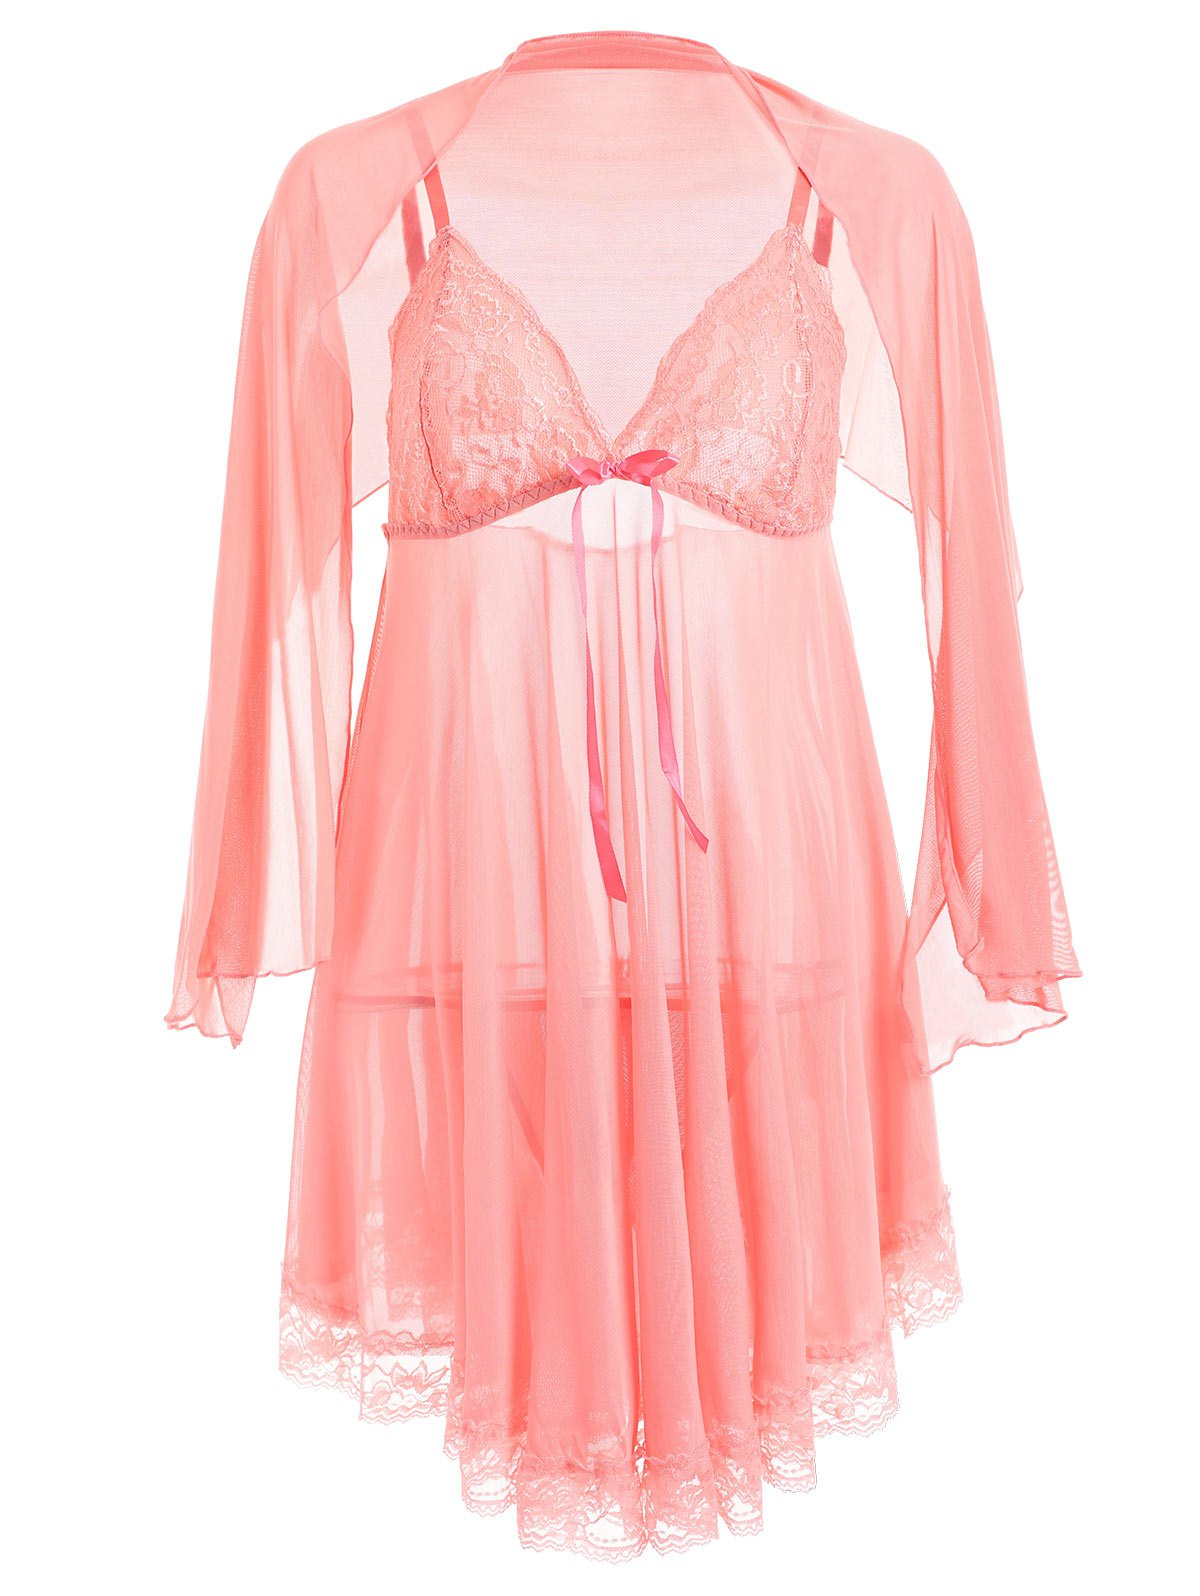 Affordable Plus Size Mesh Sheer Lingerie Babydoll with Cape